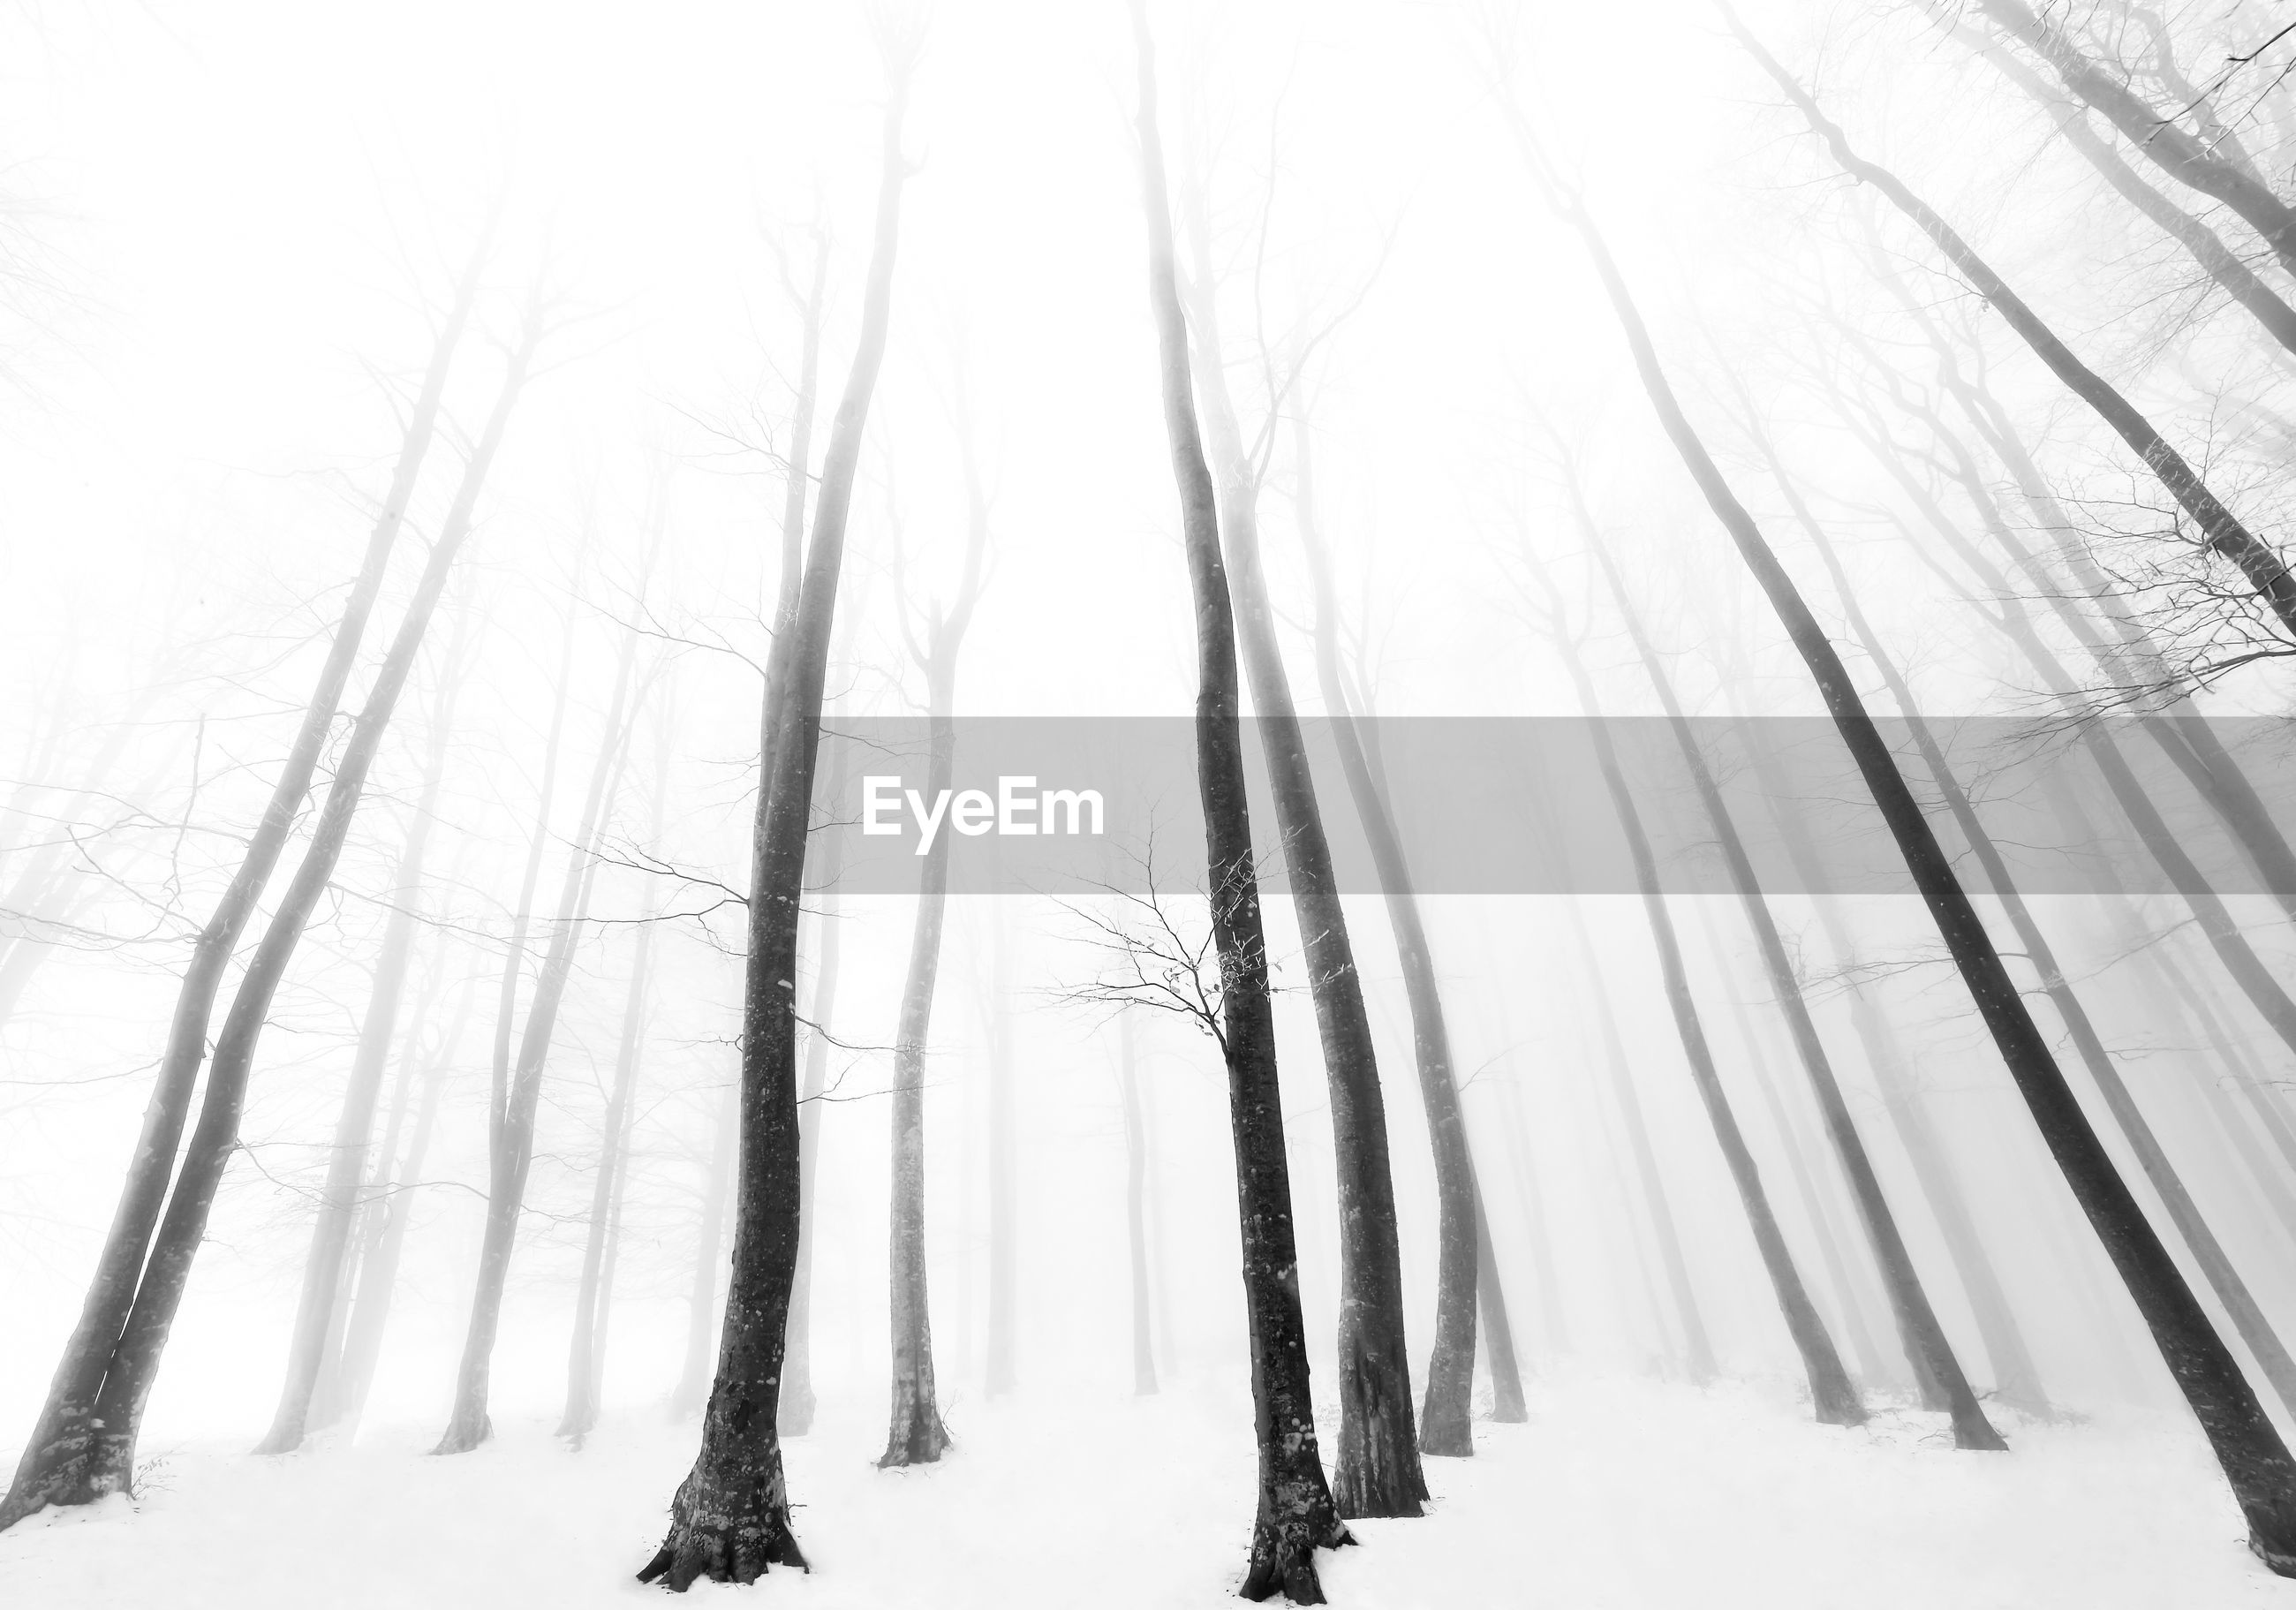 BARE TREES ON SNOW COVERED LANDSCAPE IN WINTER